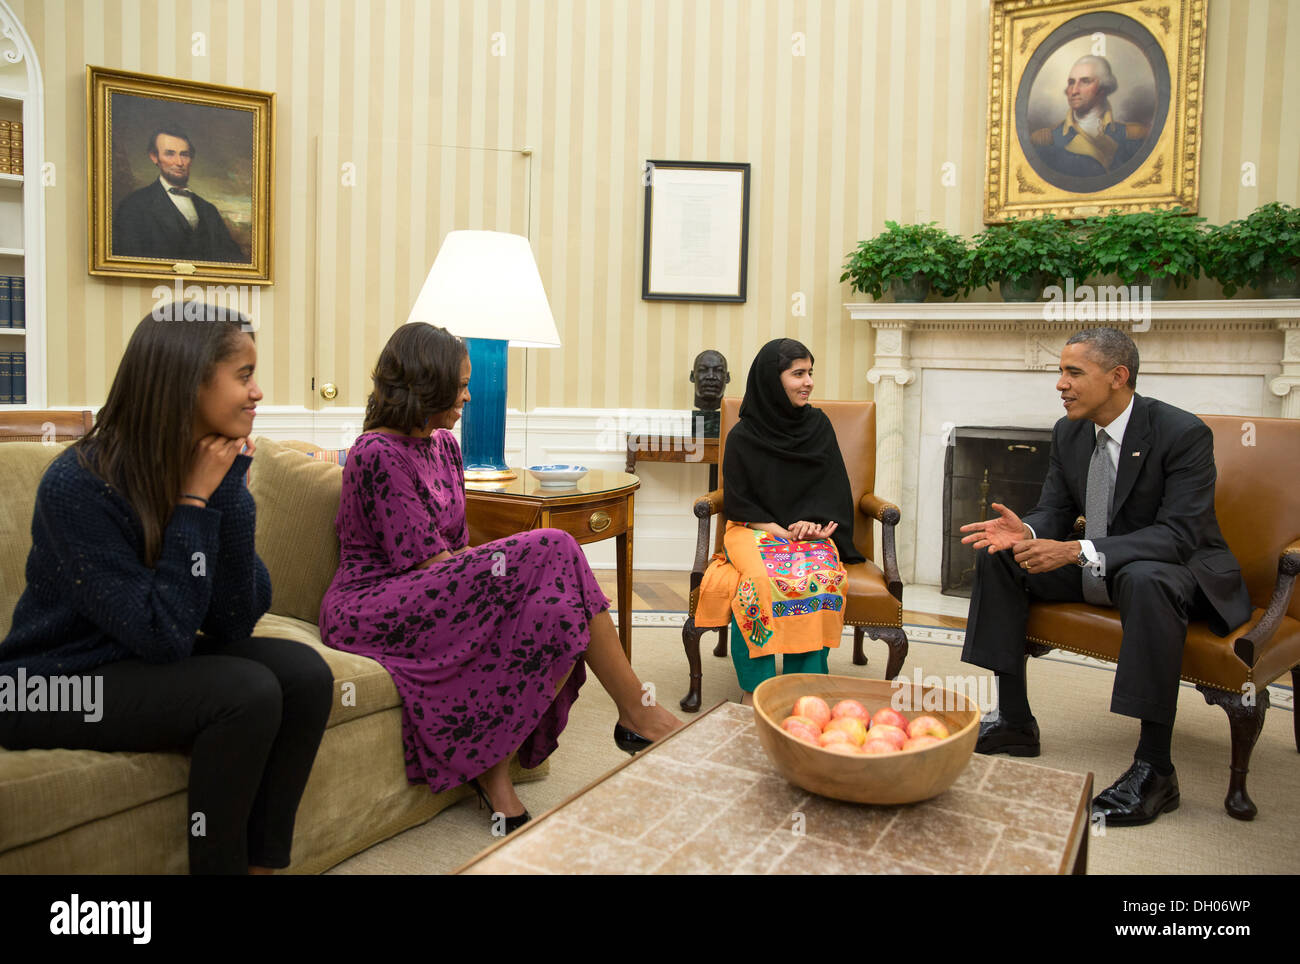 President Barack Obama, First Lady Michelle Obama, and their daughter Malia meet with Malala Yousafzai, the young Pakistani schoolgirl who was shot in the head by the Taliban a year ago, in the Oval Office, Oct. 11, 2013. - Stock Image